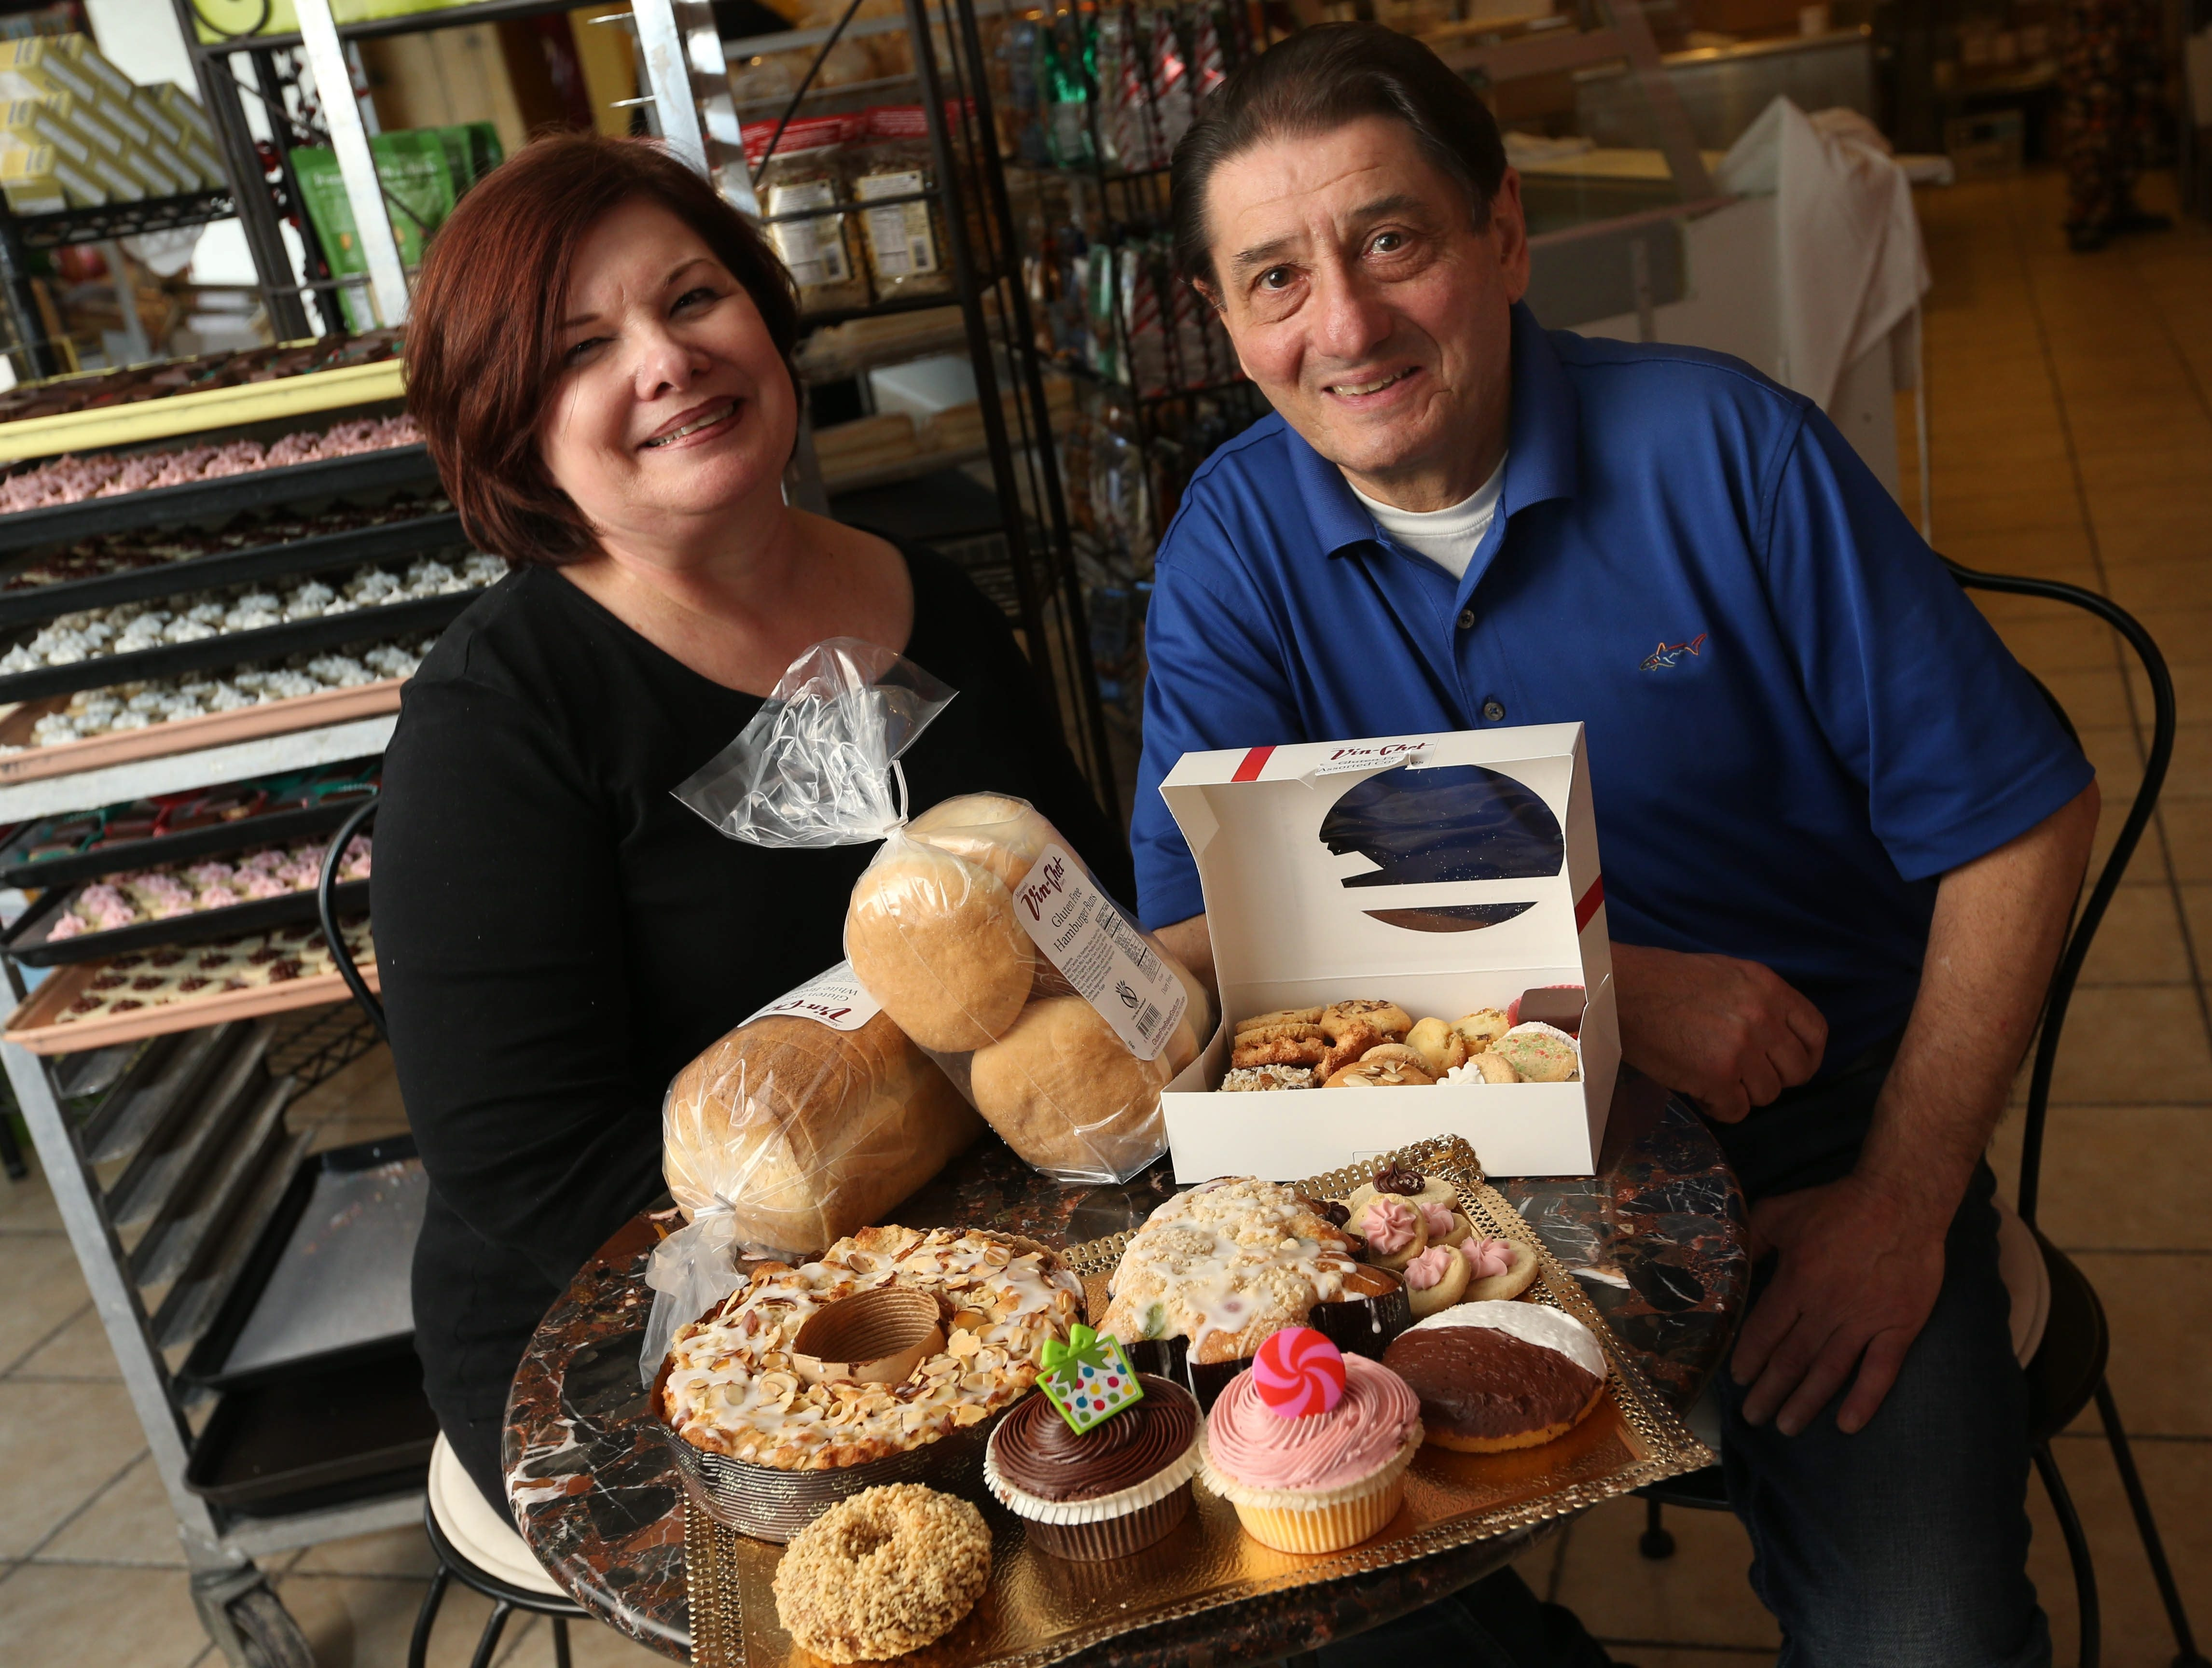 """We are not celiac ourselves but we like to eat, and we know what tastes good, and we are bakers, so we kept working."" – Nancy and Joseph Mangano, owners of Vin-Chet Bakery in Amherst, began introducing gluten-free baked goods in 2007 and now that is all they make."